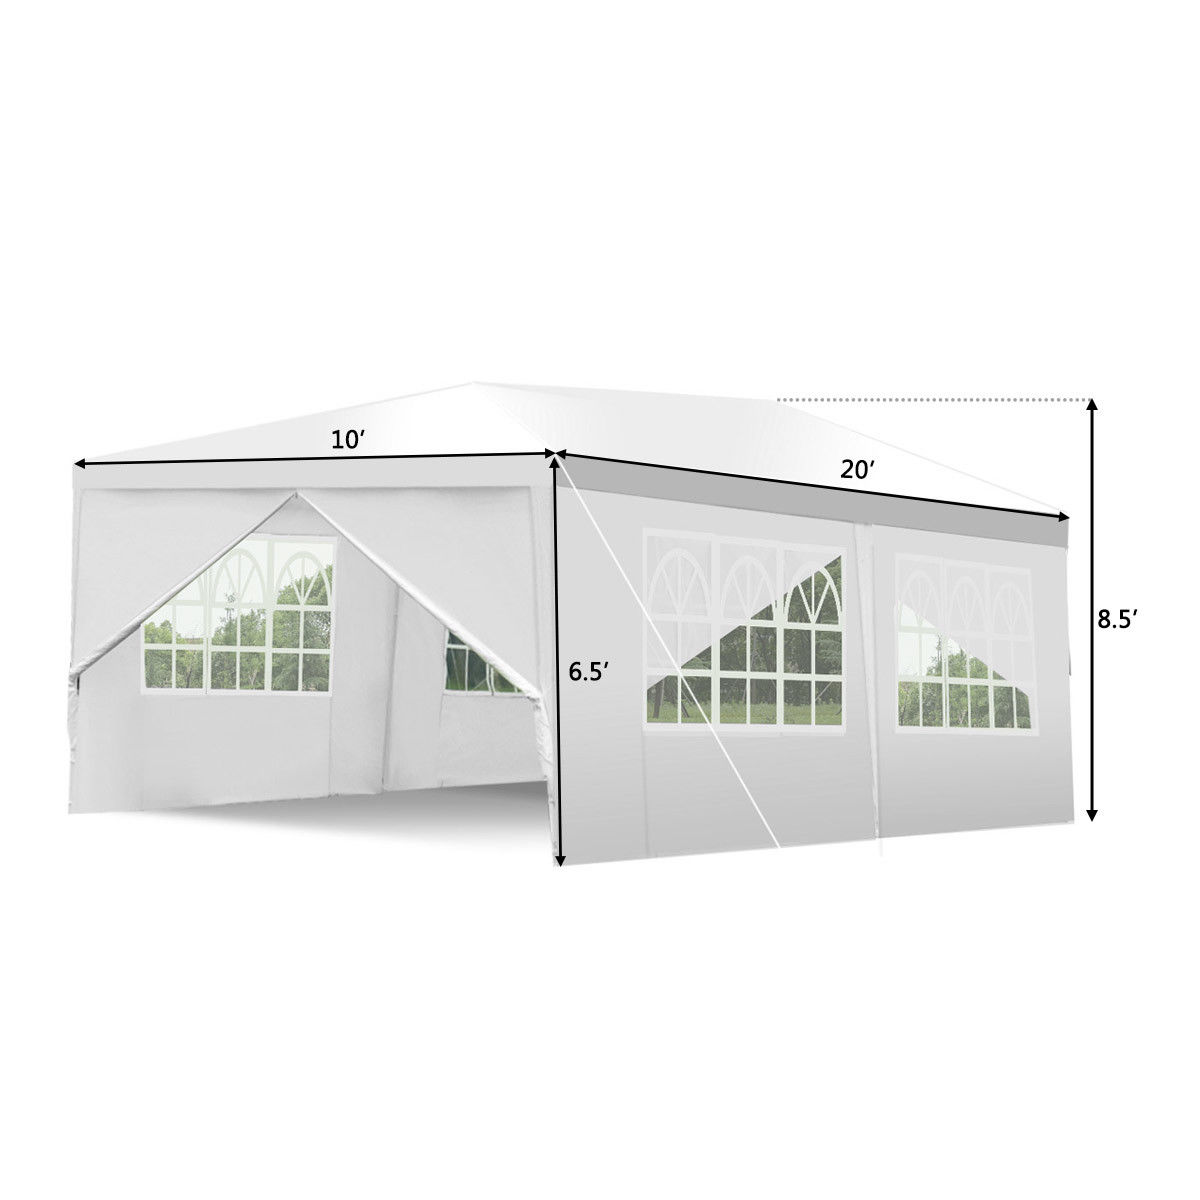 Wedding Tent Canopy Party 10'x20' Heavy Duty Gazebo Cater Event W/ Side Walls - image 1 of 10